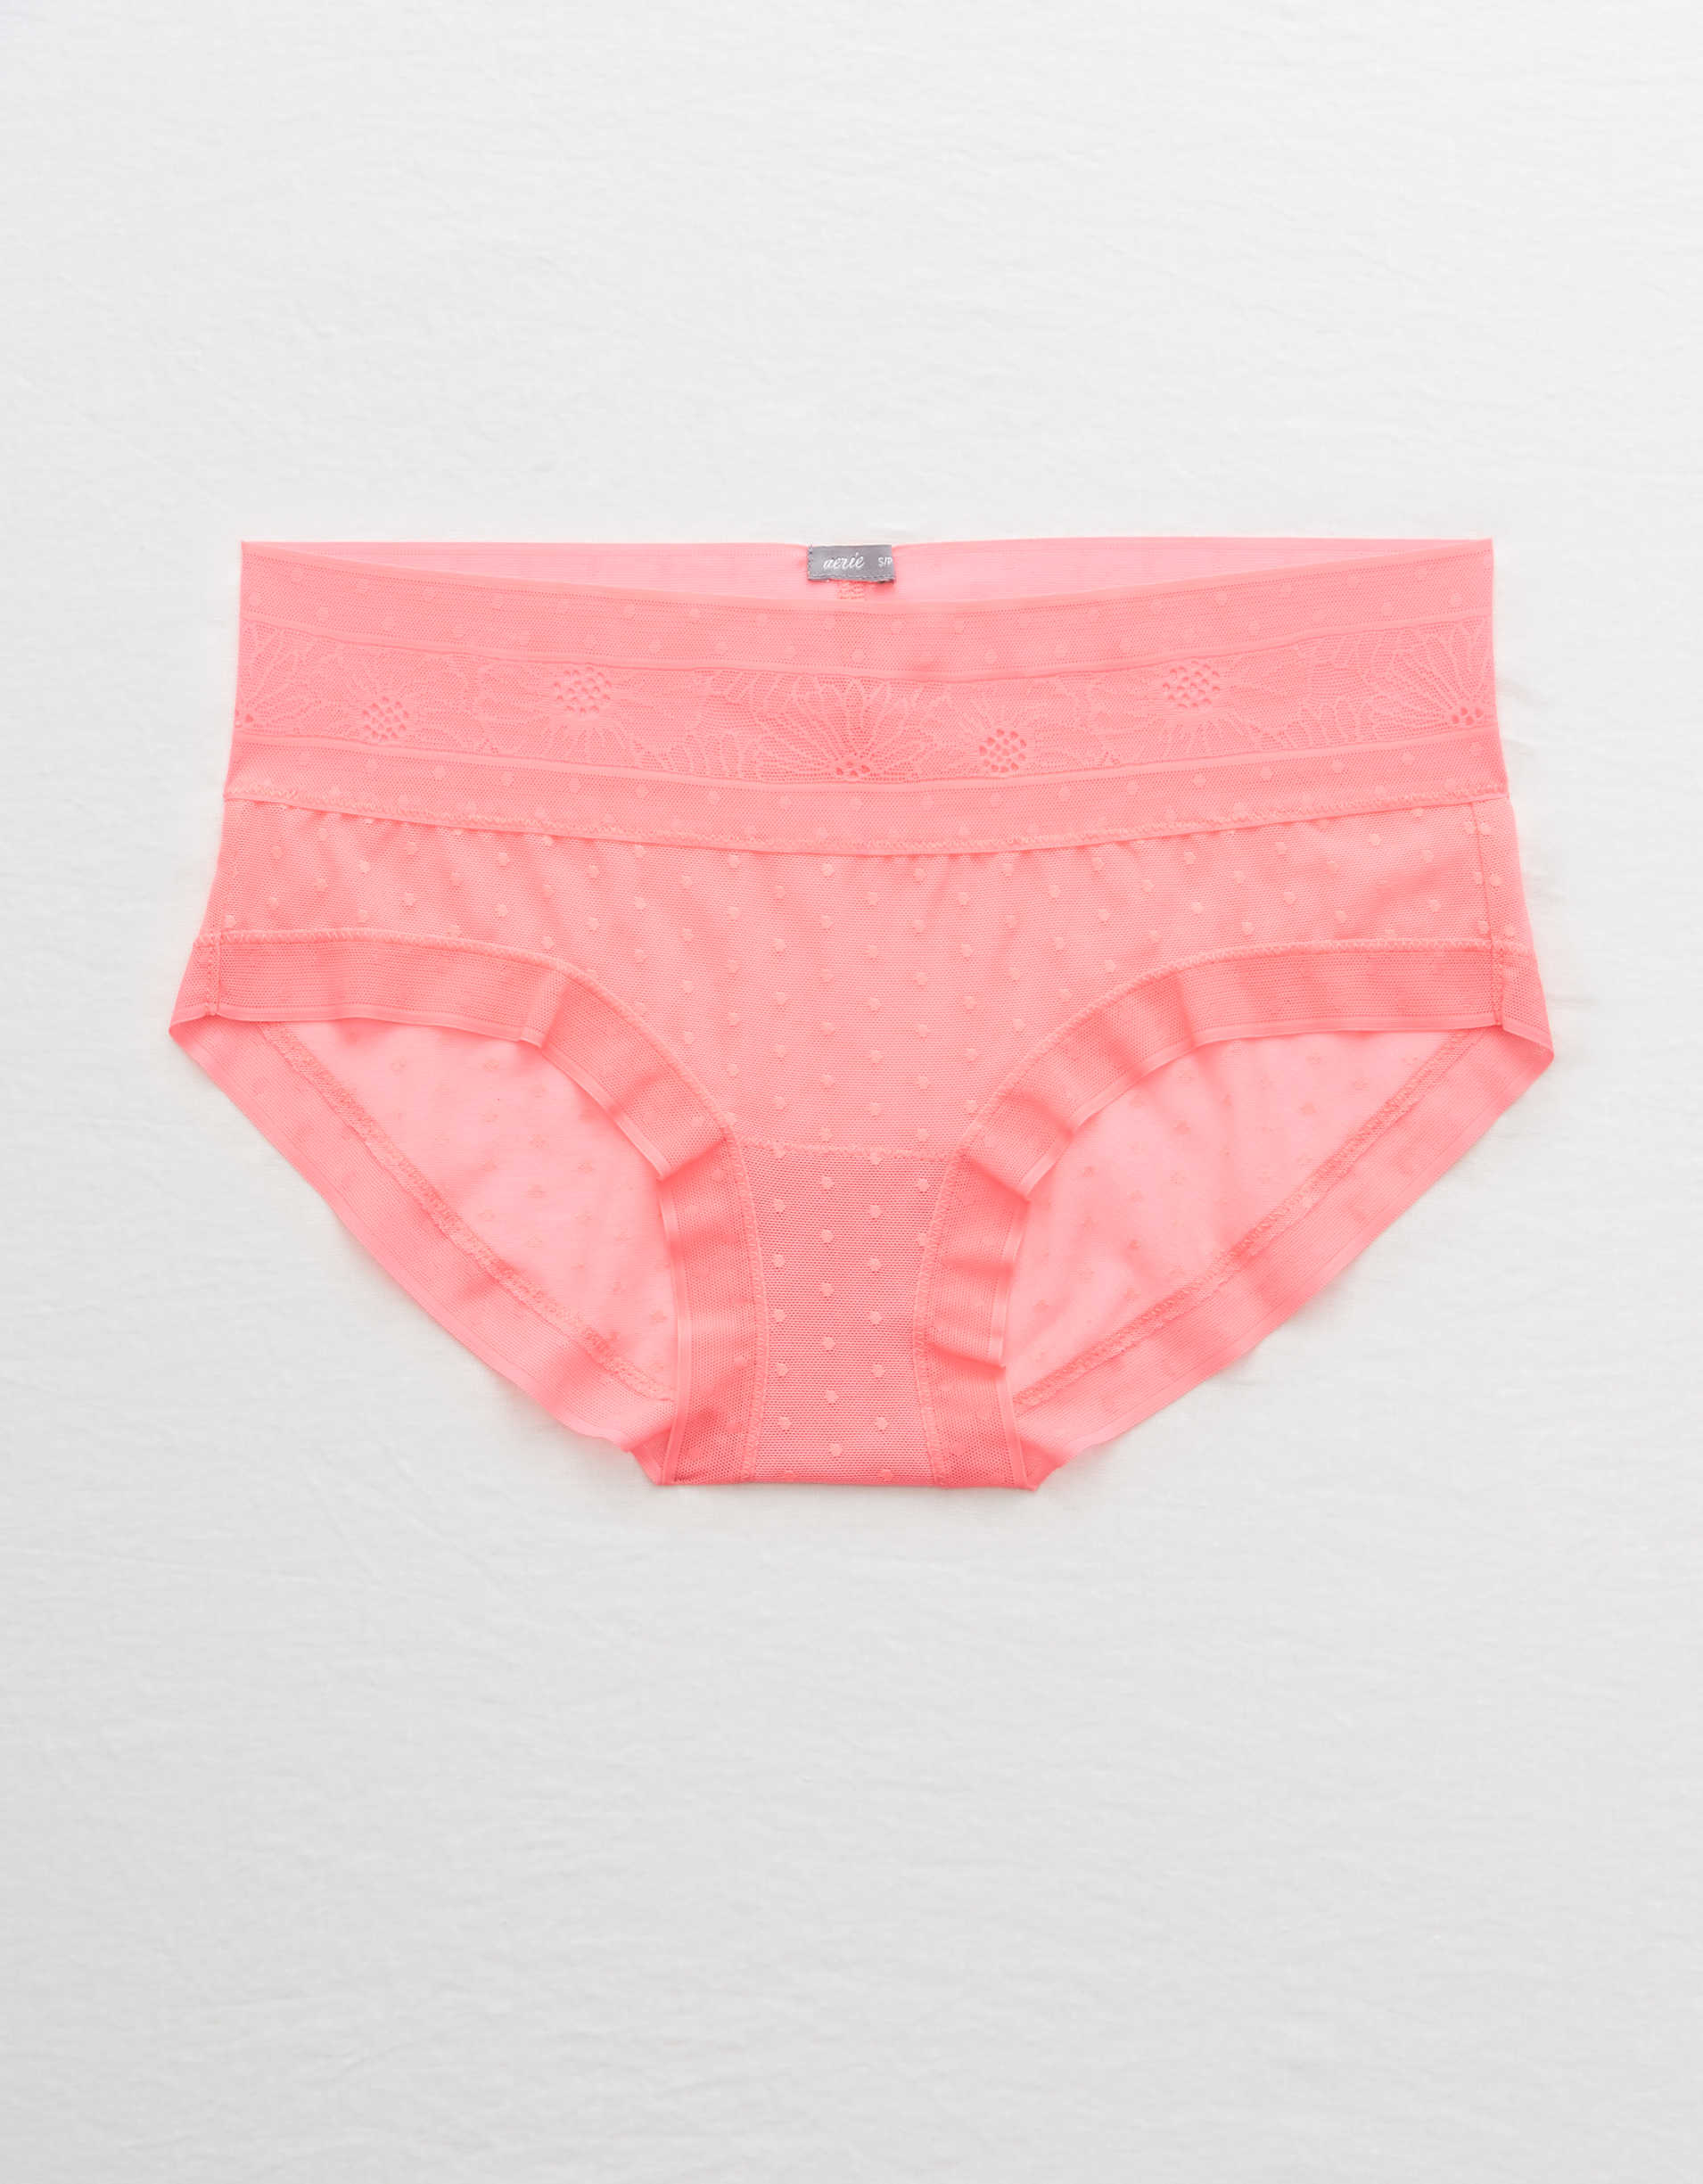 Aerie POP! Lace Boybrief Underwear